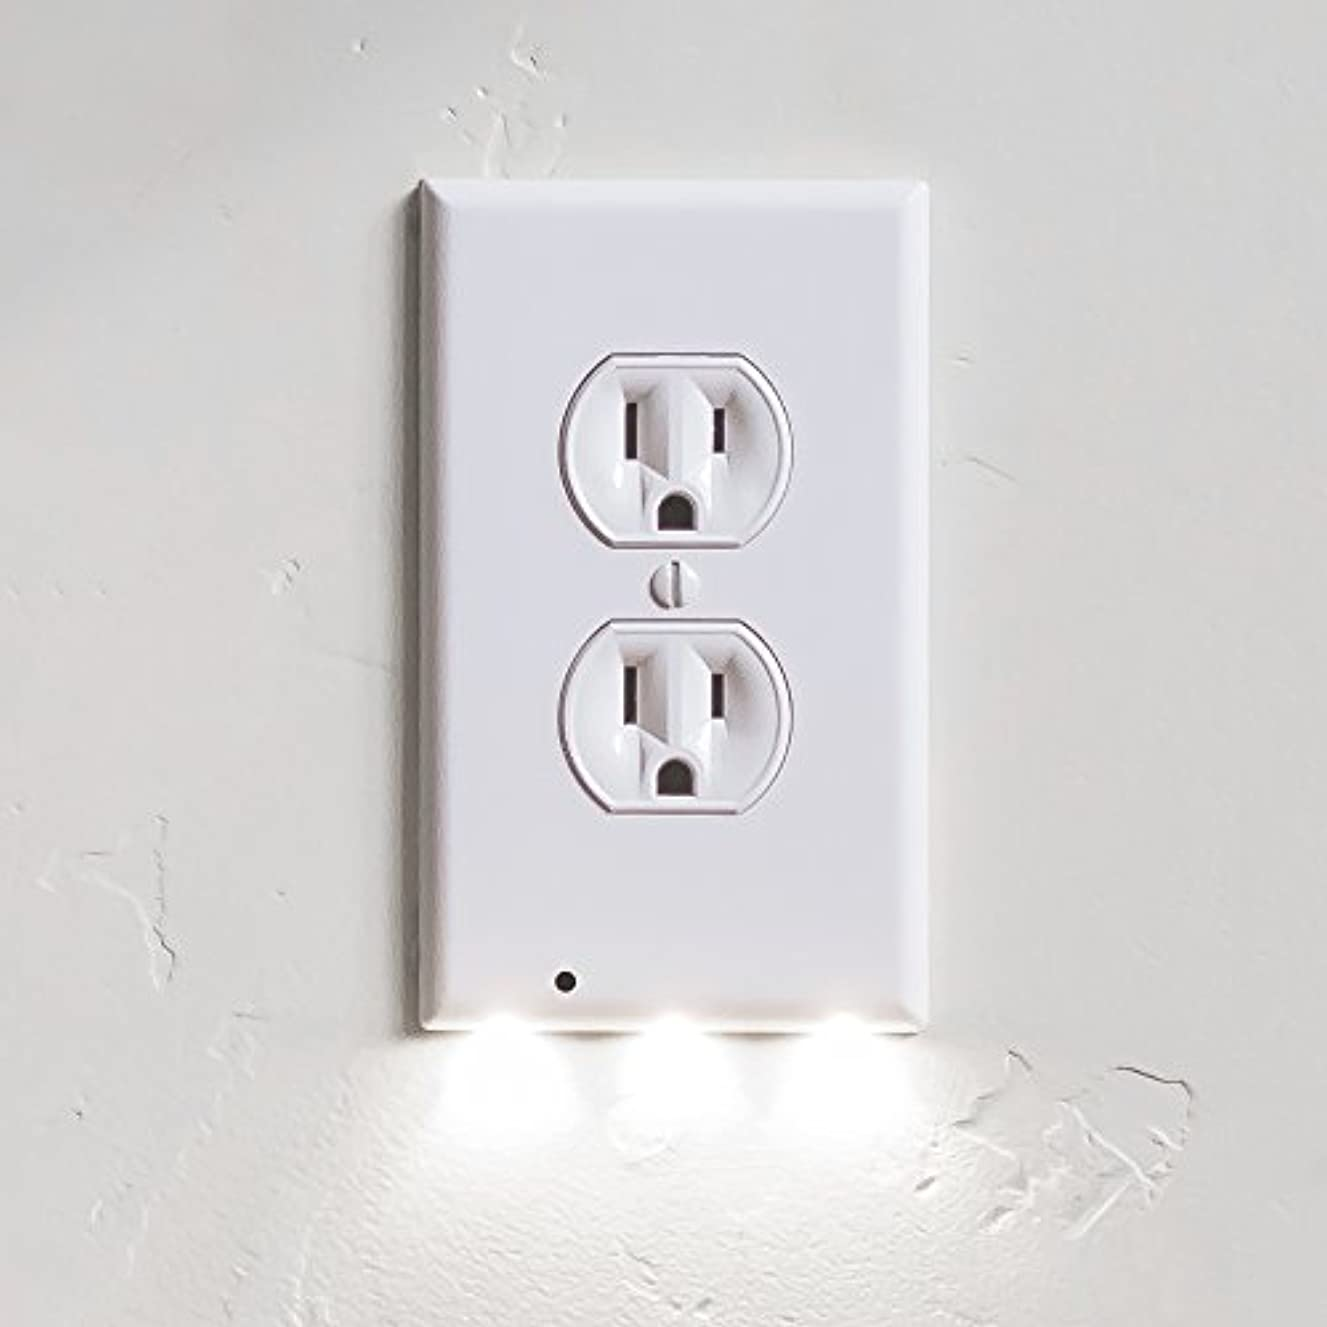 9 Pack SnapPower GuideLight - Outlet Wall Plate With LED Night Lights - FOR OUTLETS - (Duplex, White)